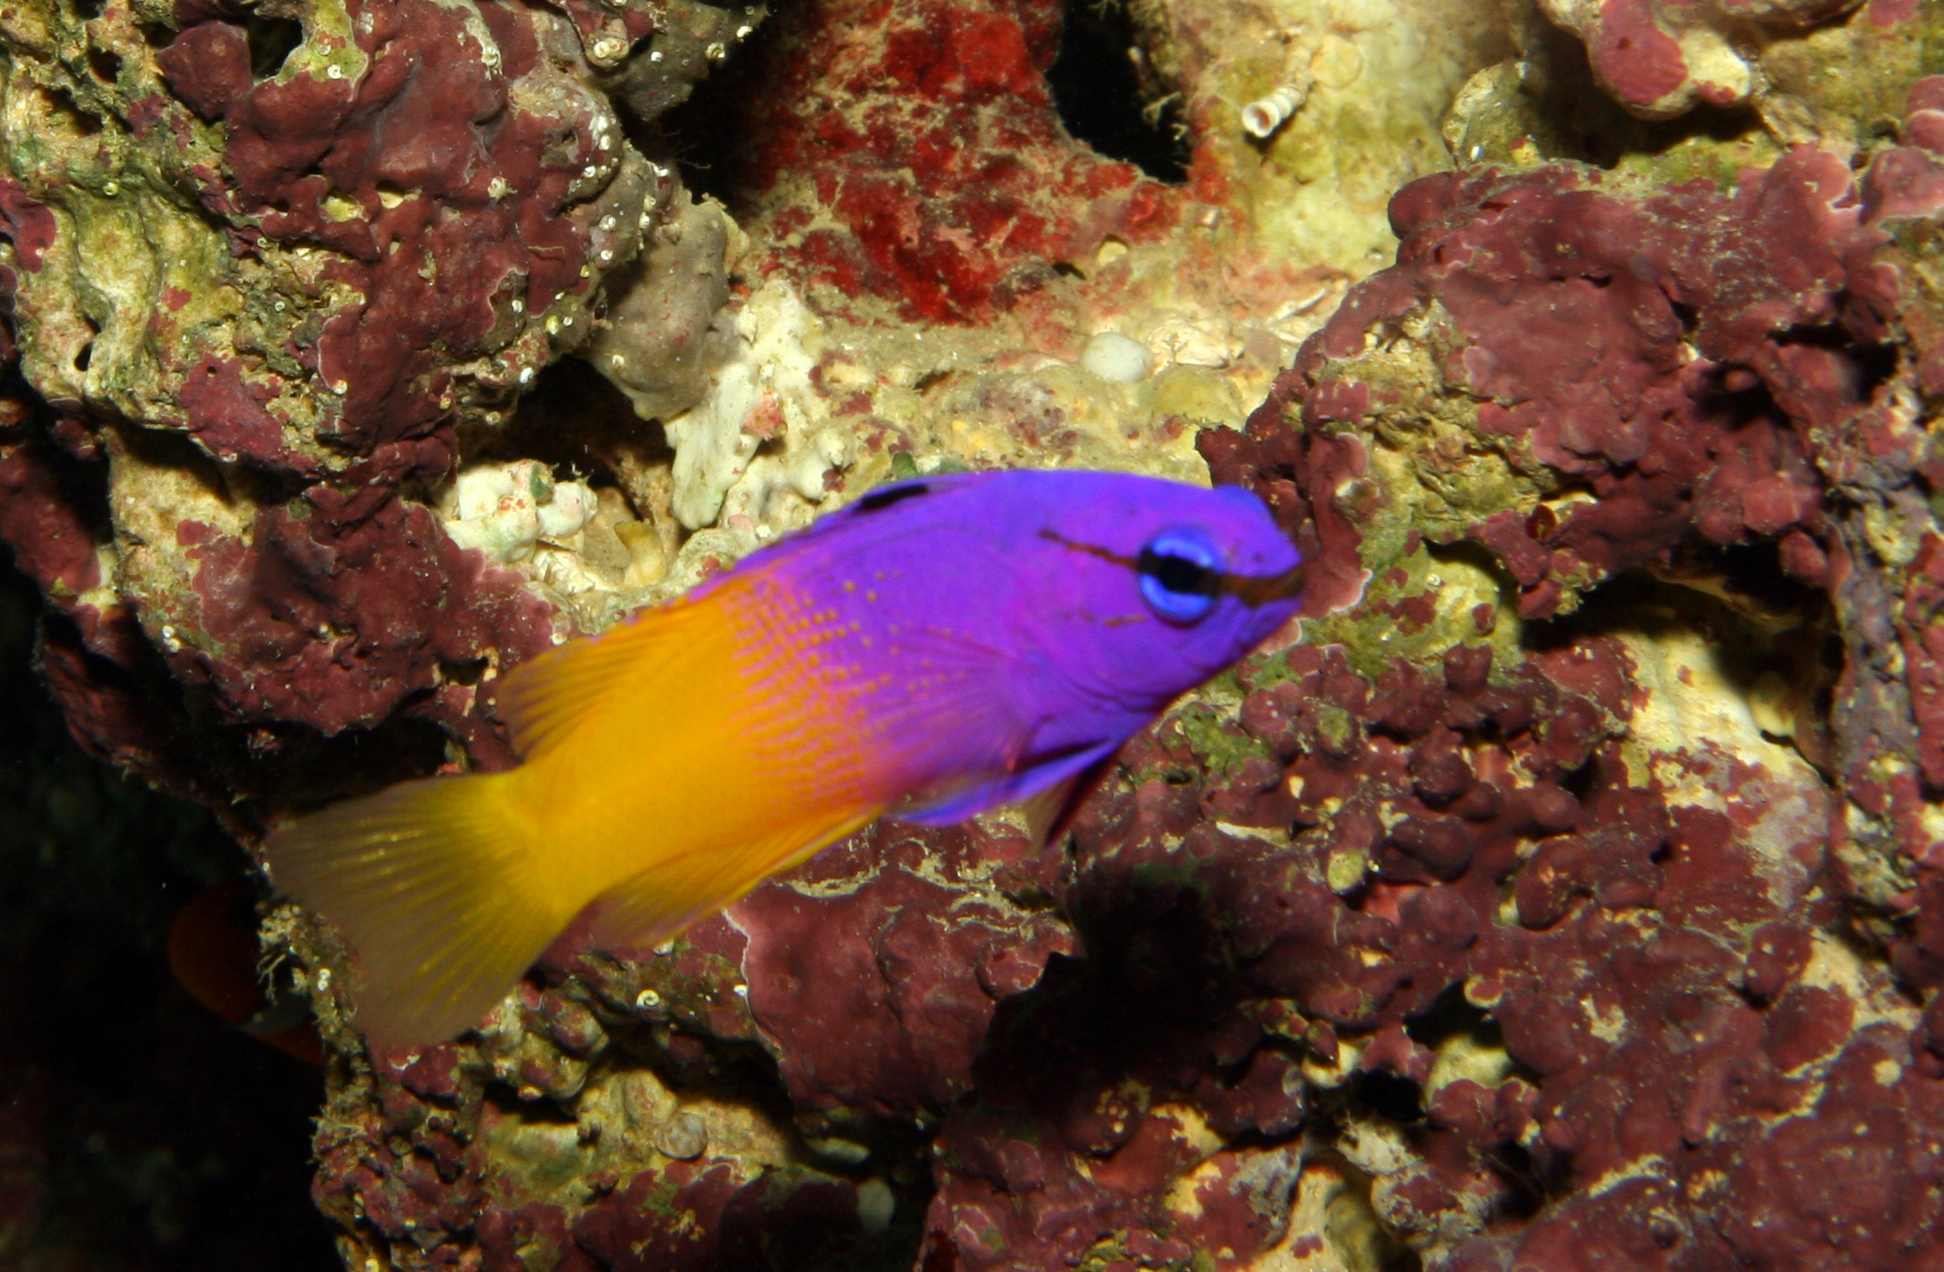 Pseudochromis paccagnellae (royal dottyback), Aquarium 1.jpg - Pseudochromis paccagnellae (royal dottyback)